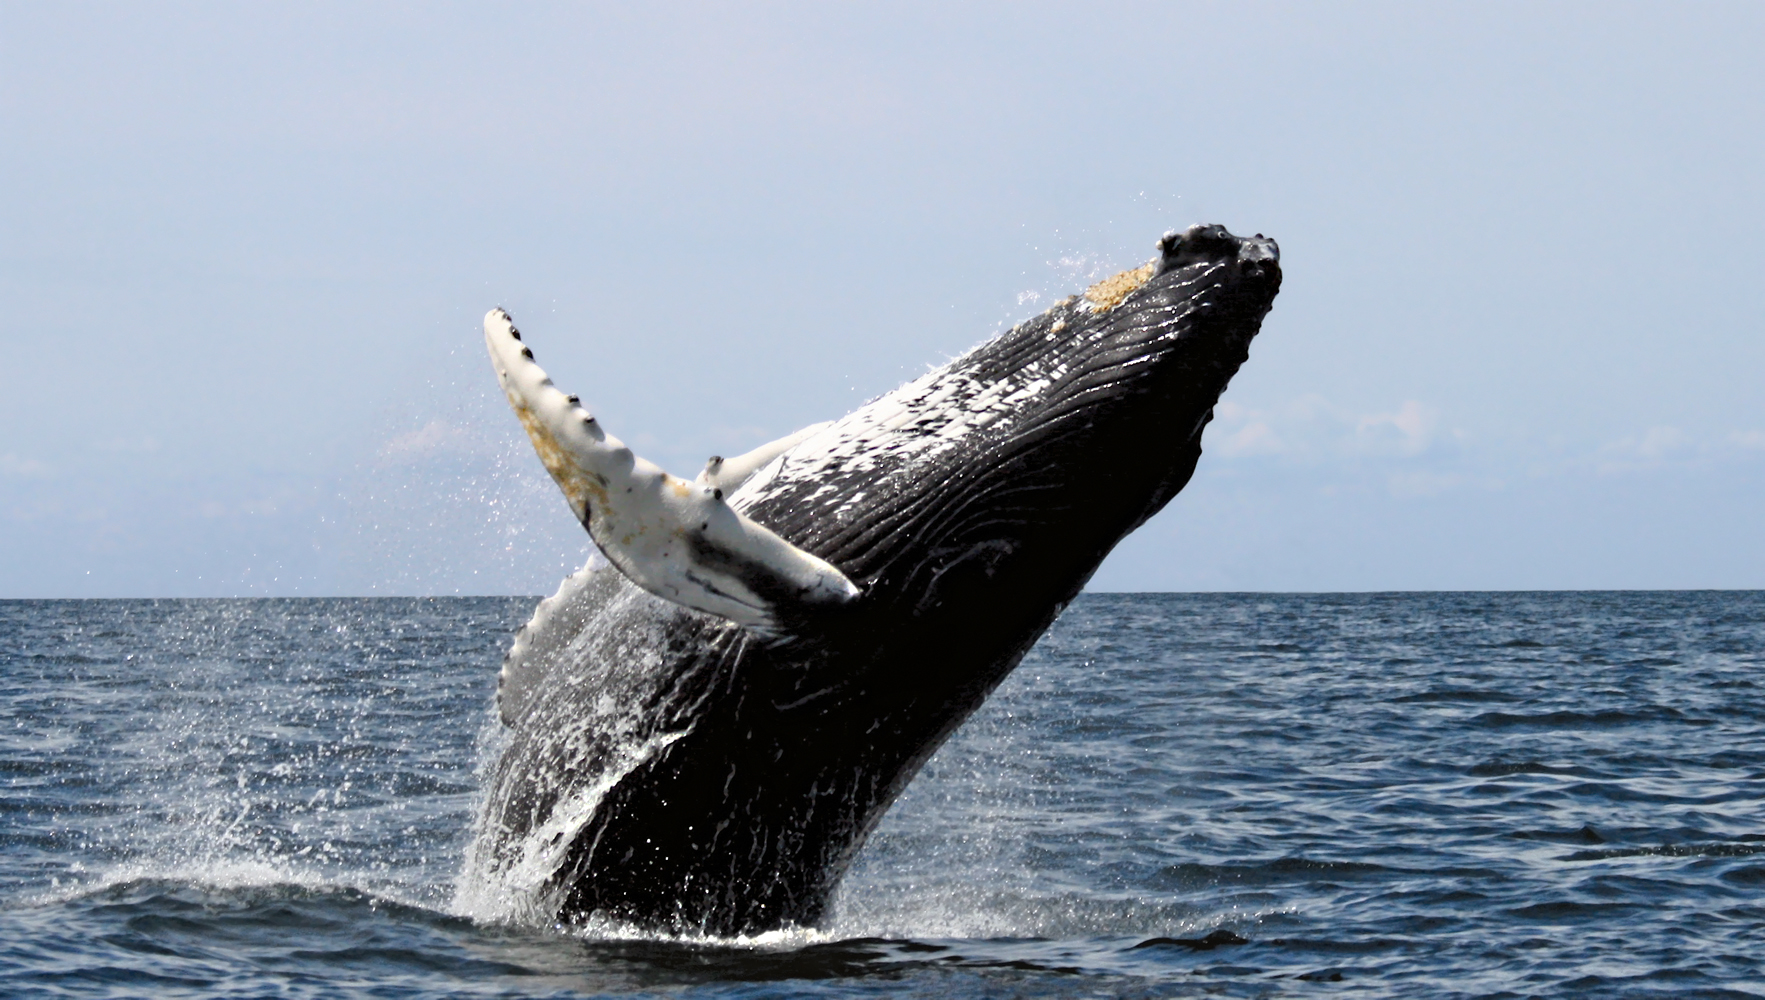 Humpback whales in at least 9 of 14 major regions around the world are no longer considered endangered.